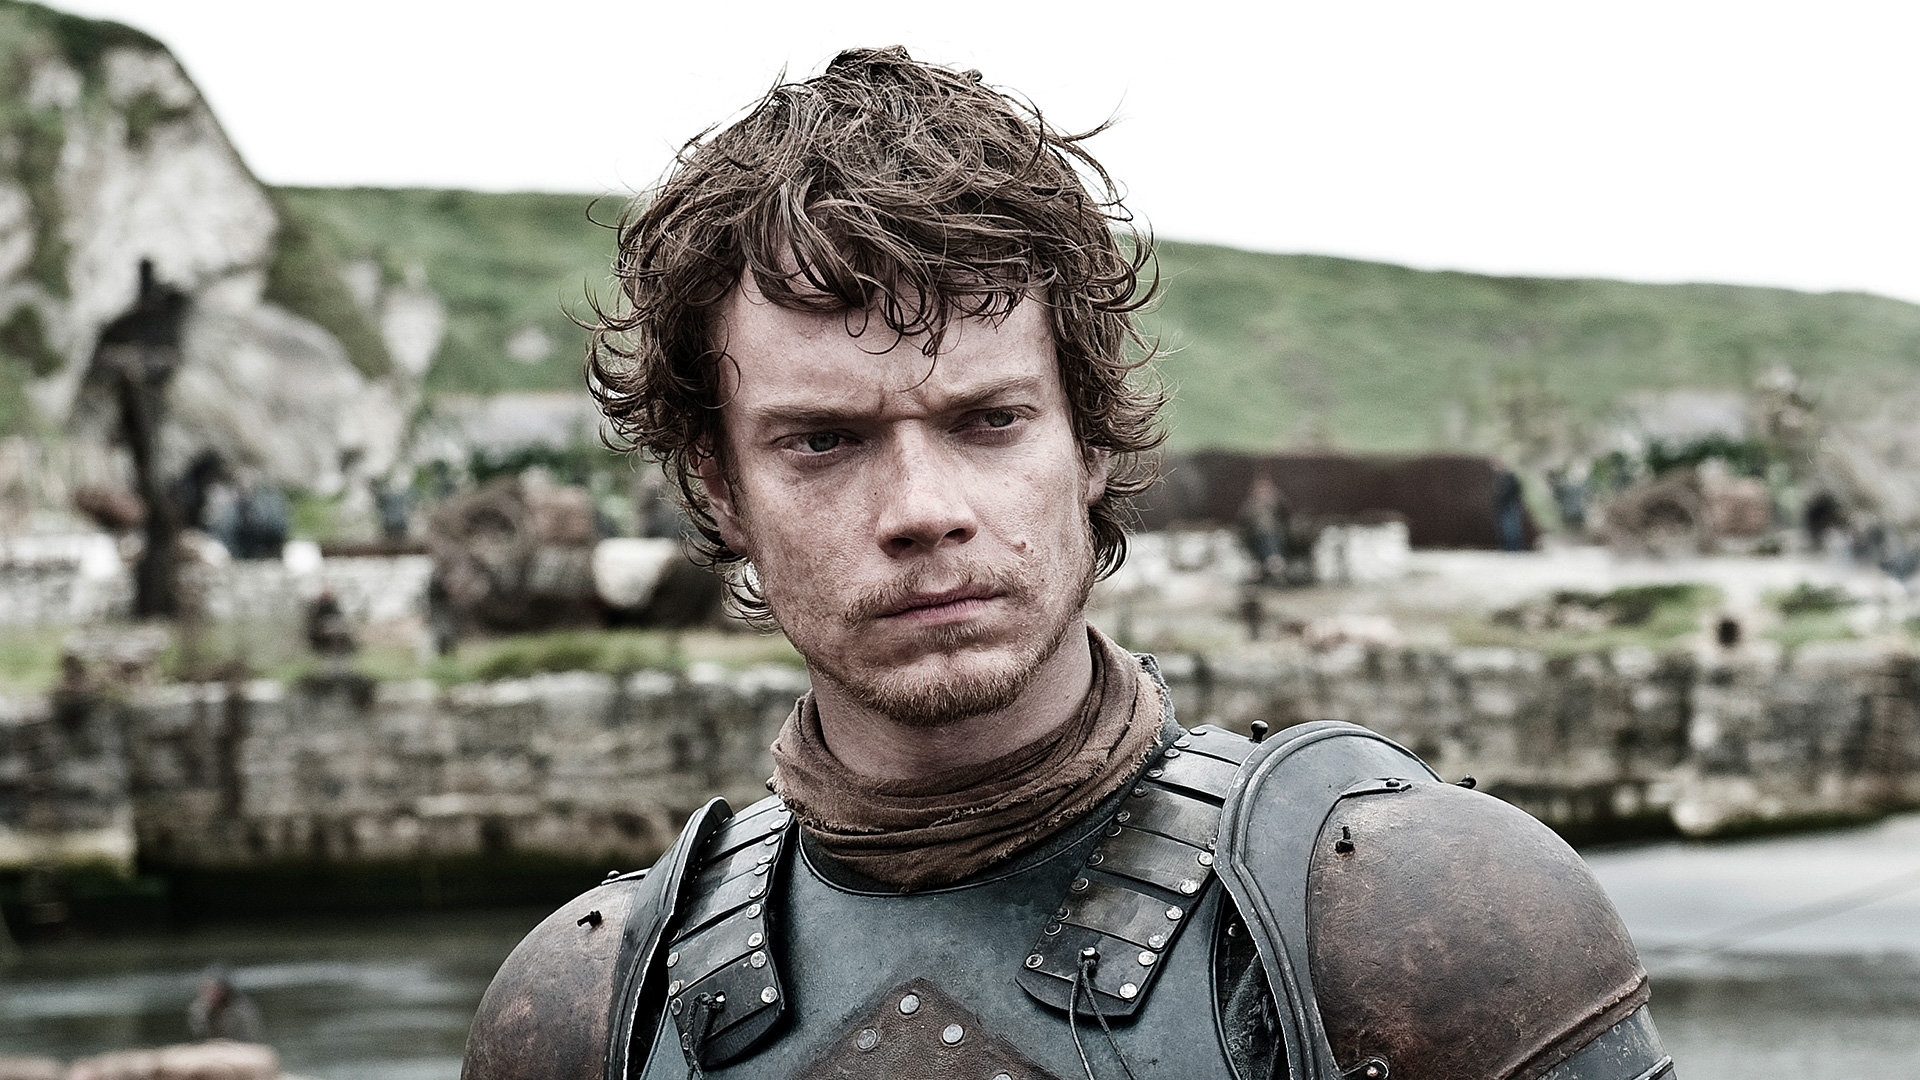 Theon Greyjoy, who loses his manhood in the program Game of Thrones